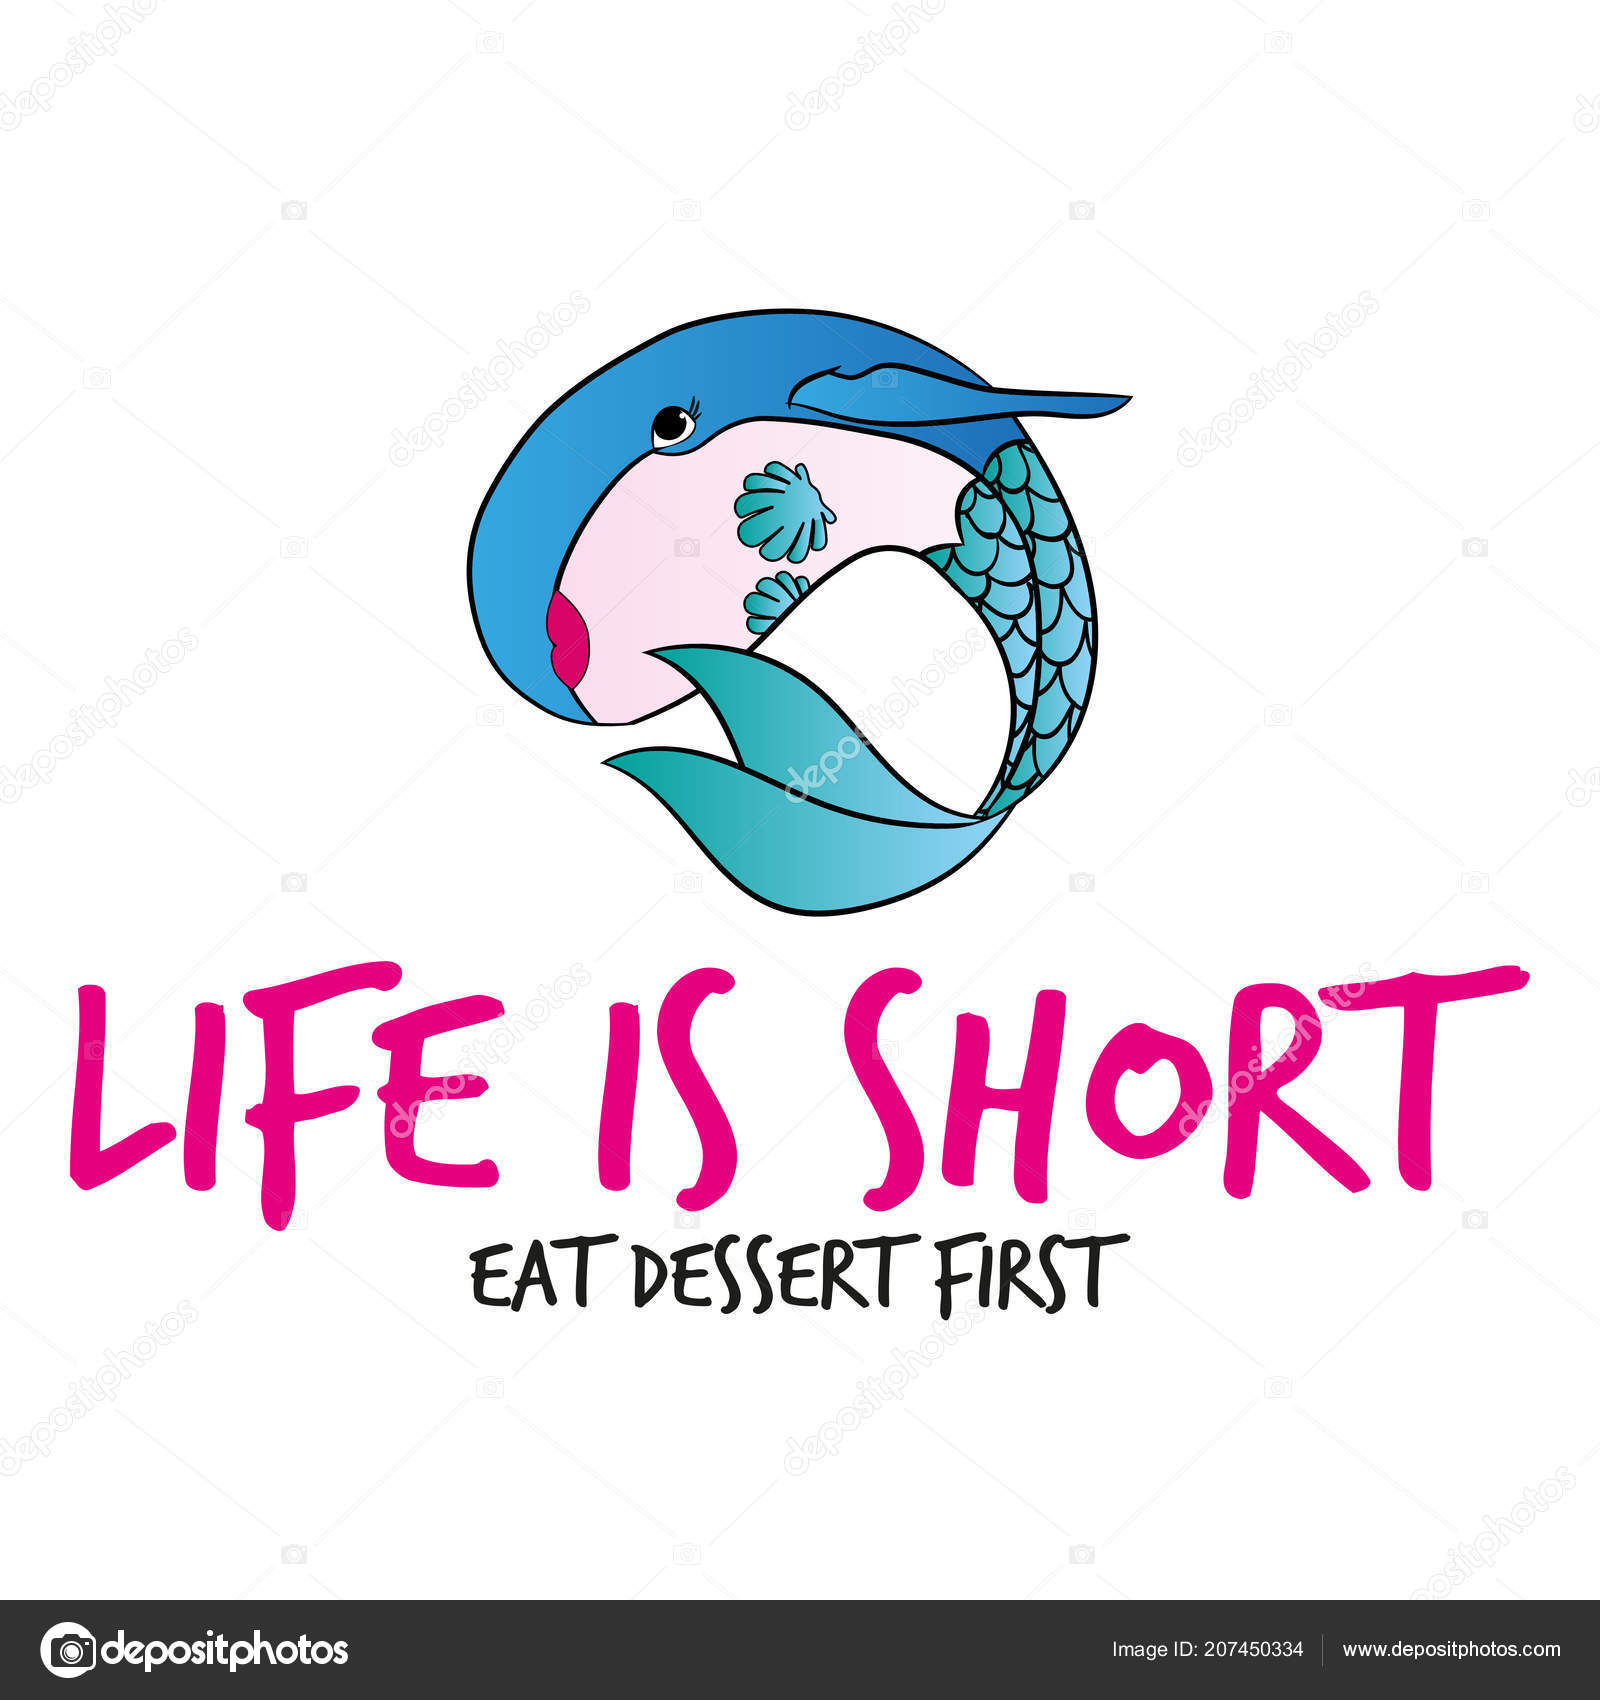 quotes about dessert life short eat dessert first funny vector